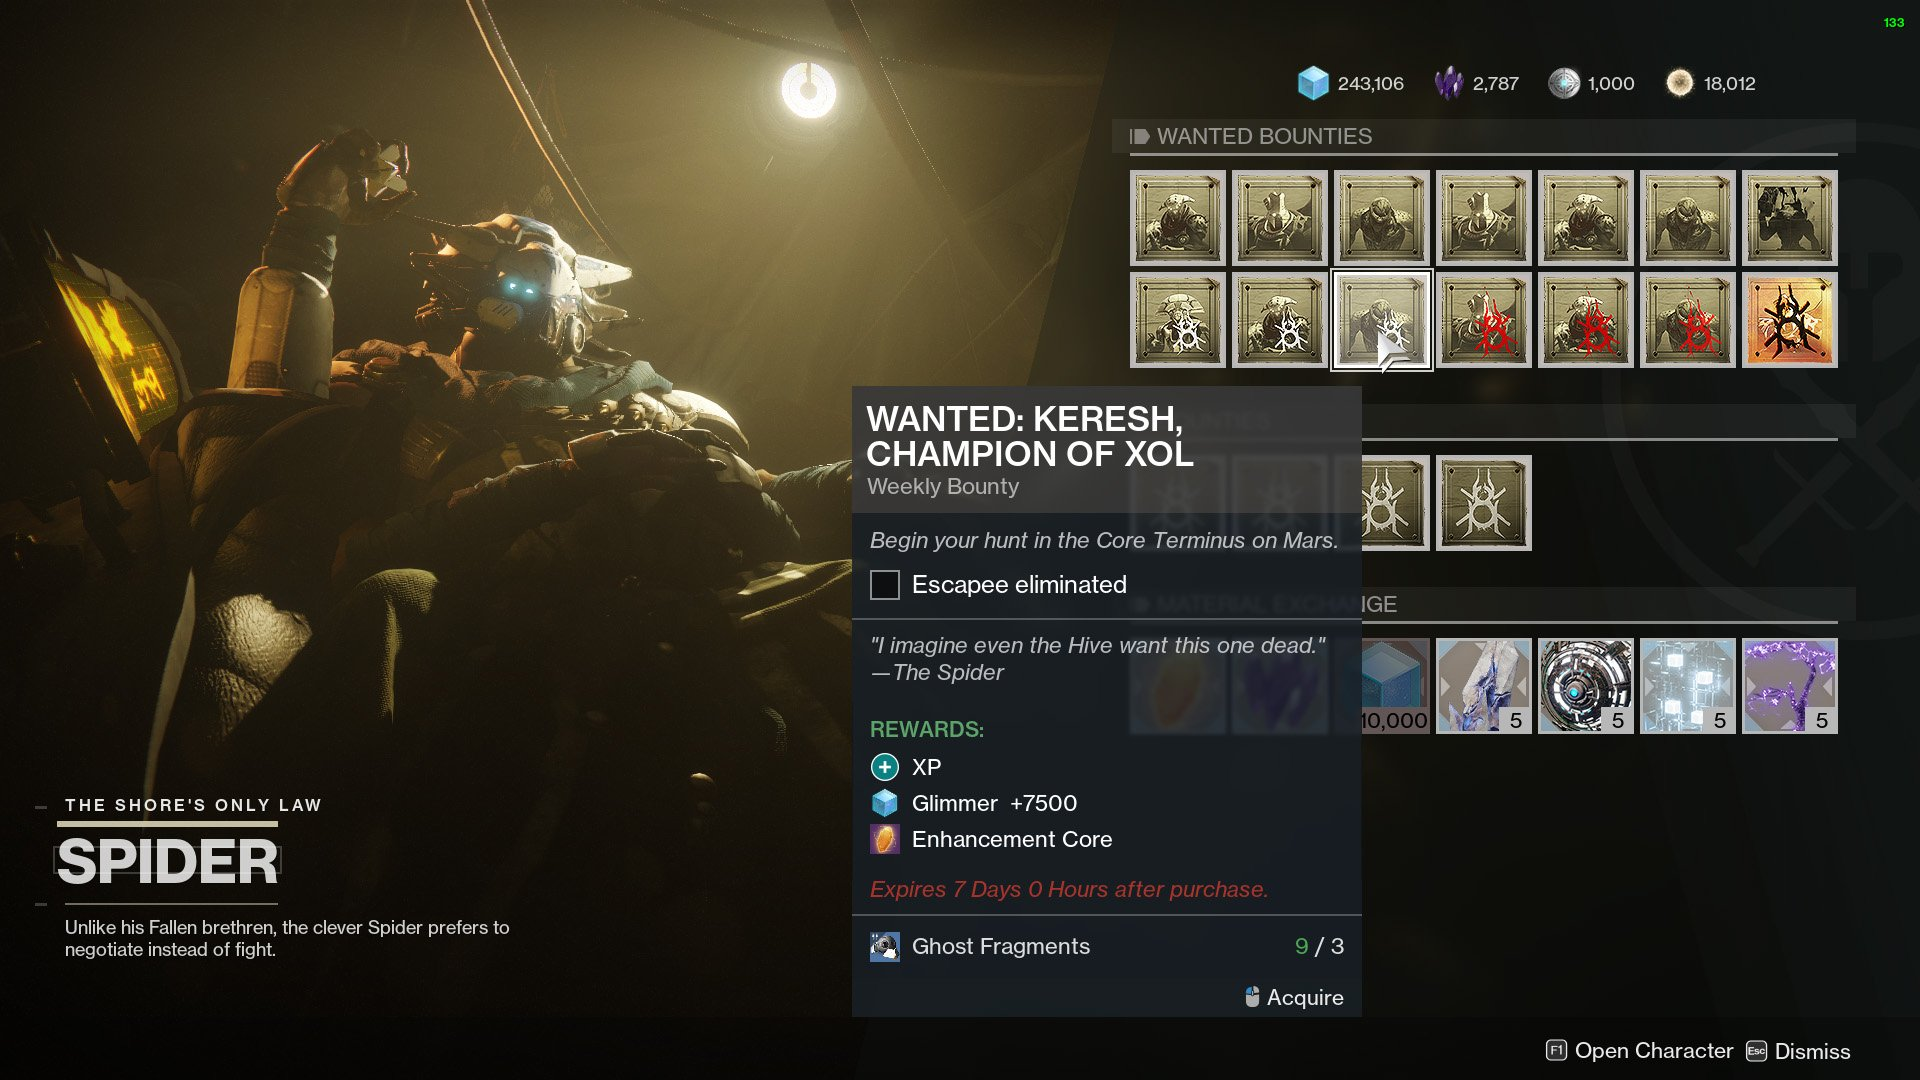 destiny 2 spiders wanted bounty keresh champion of xol